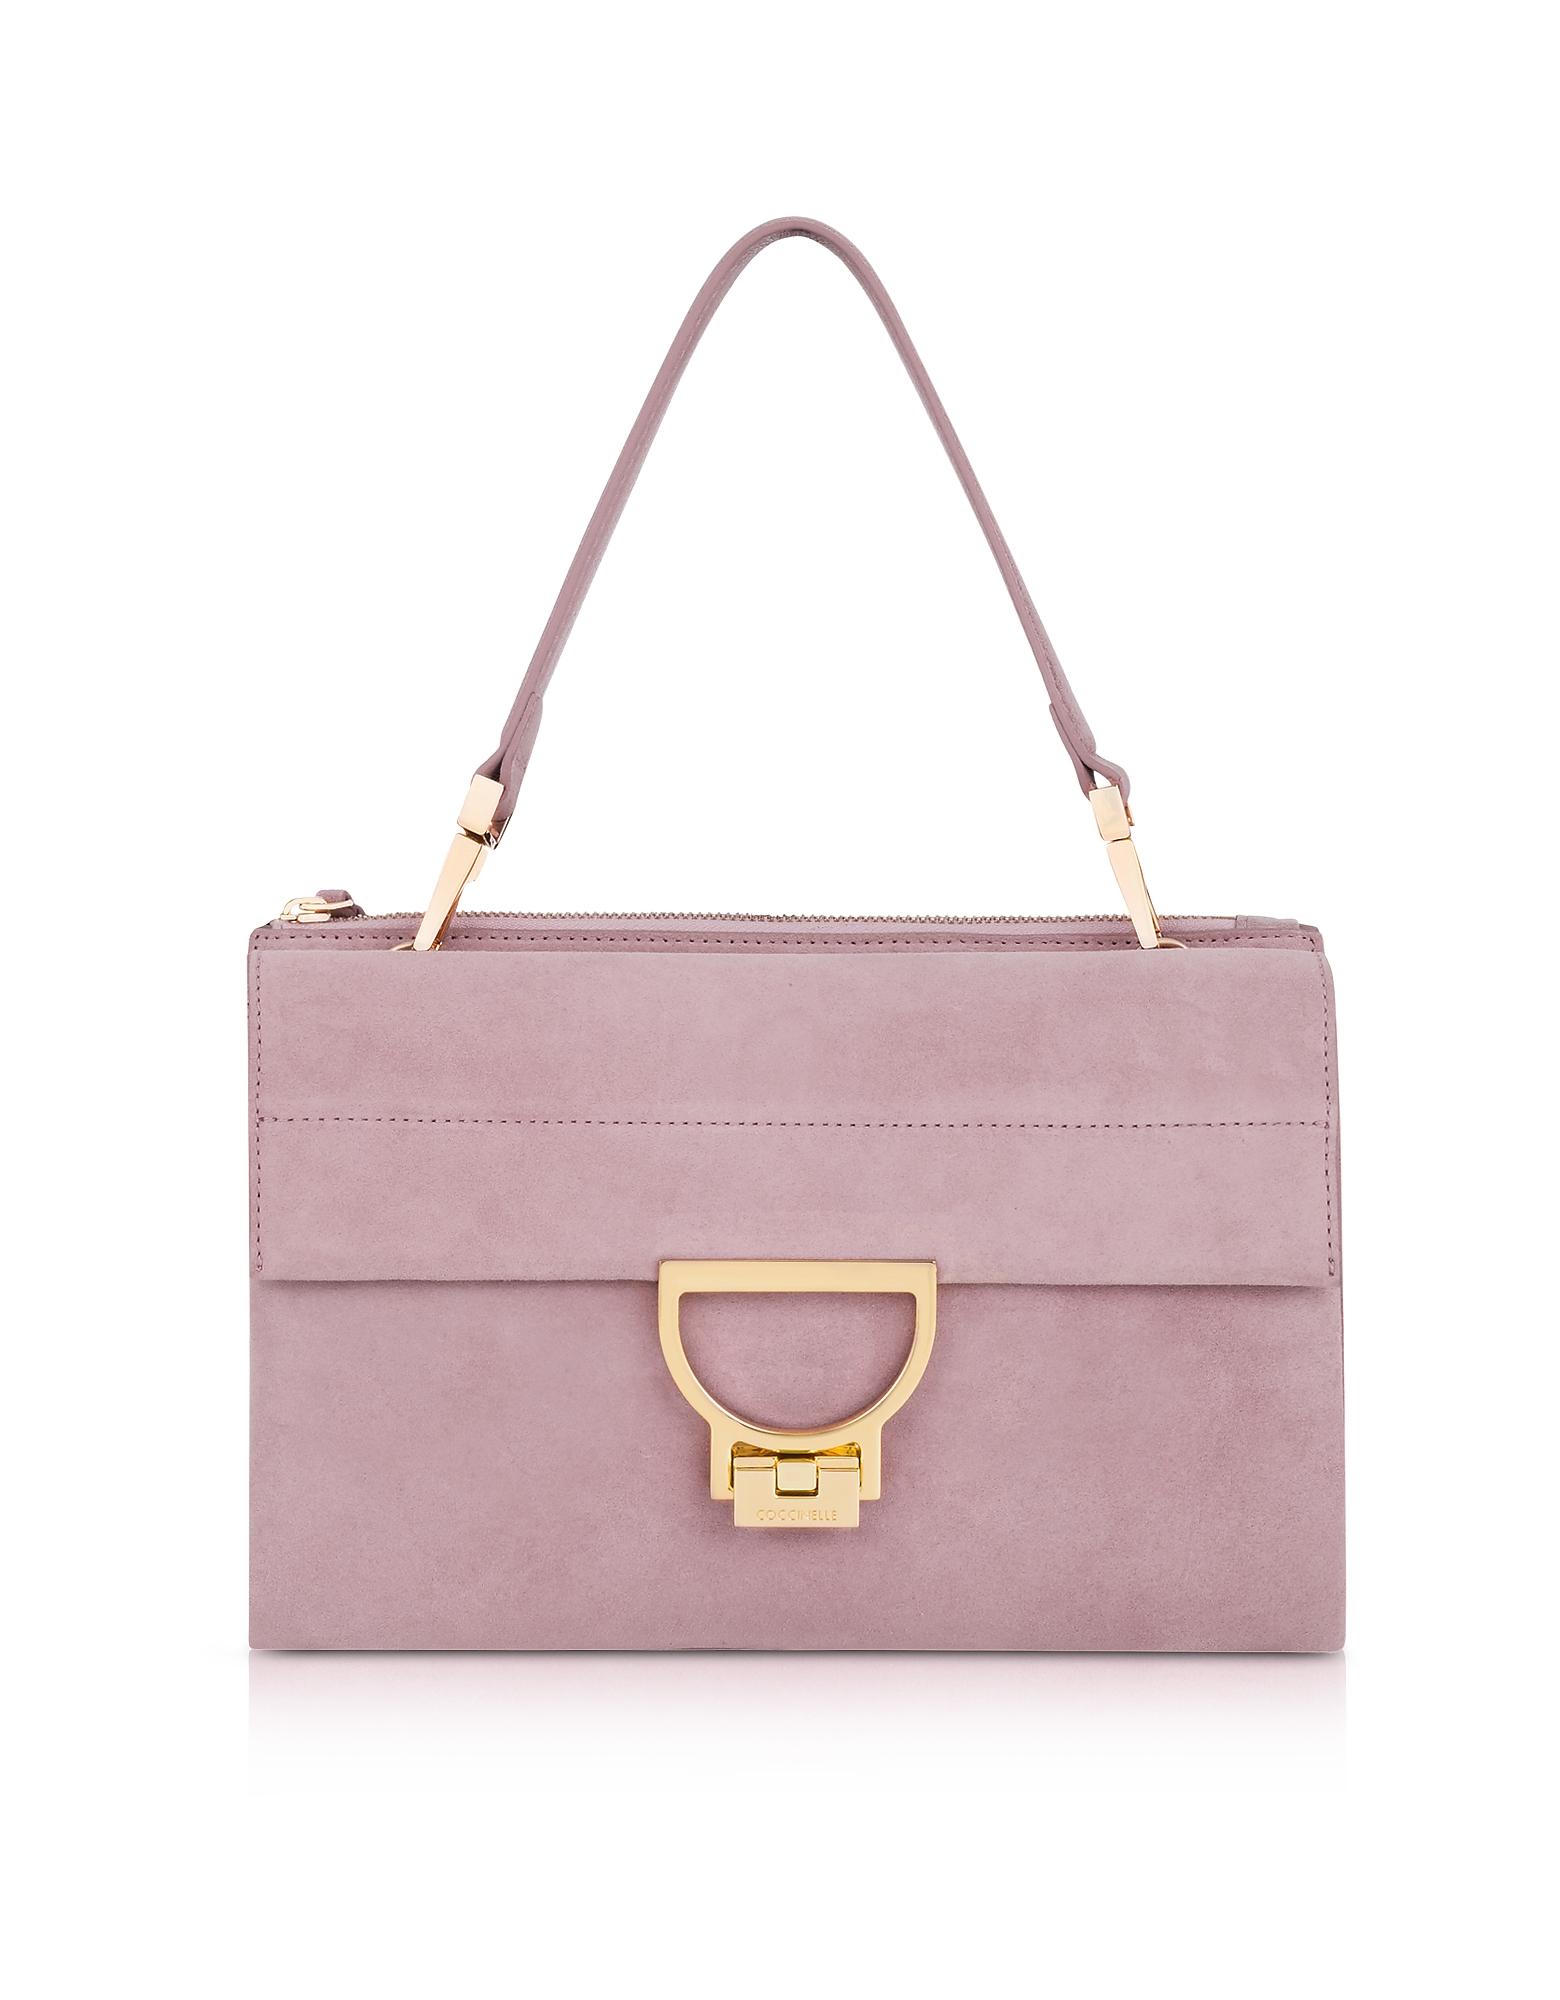 Coccinelle Handbags, Mauve Suede Arlettis Shoulder Bag